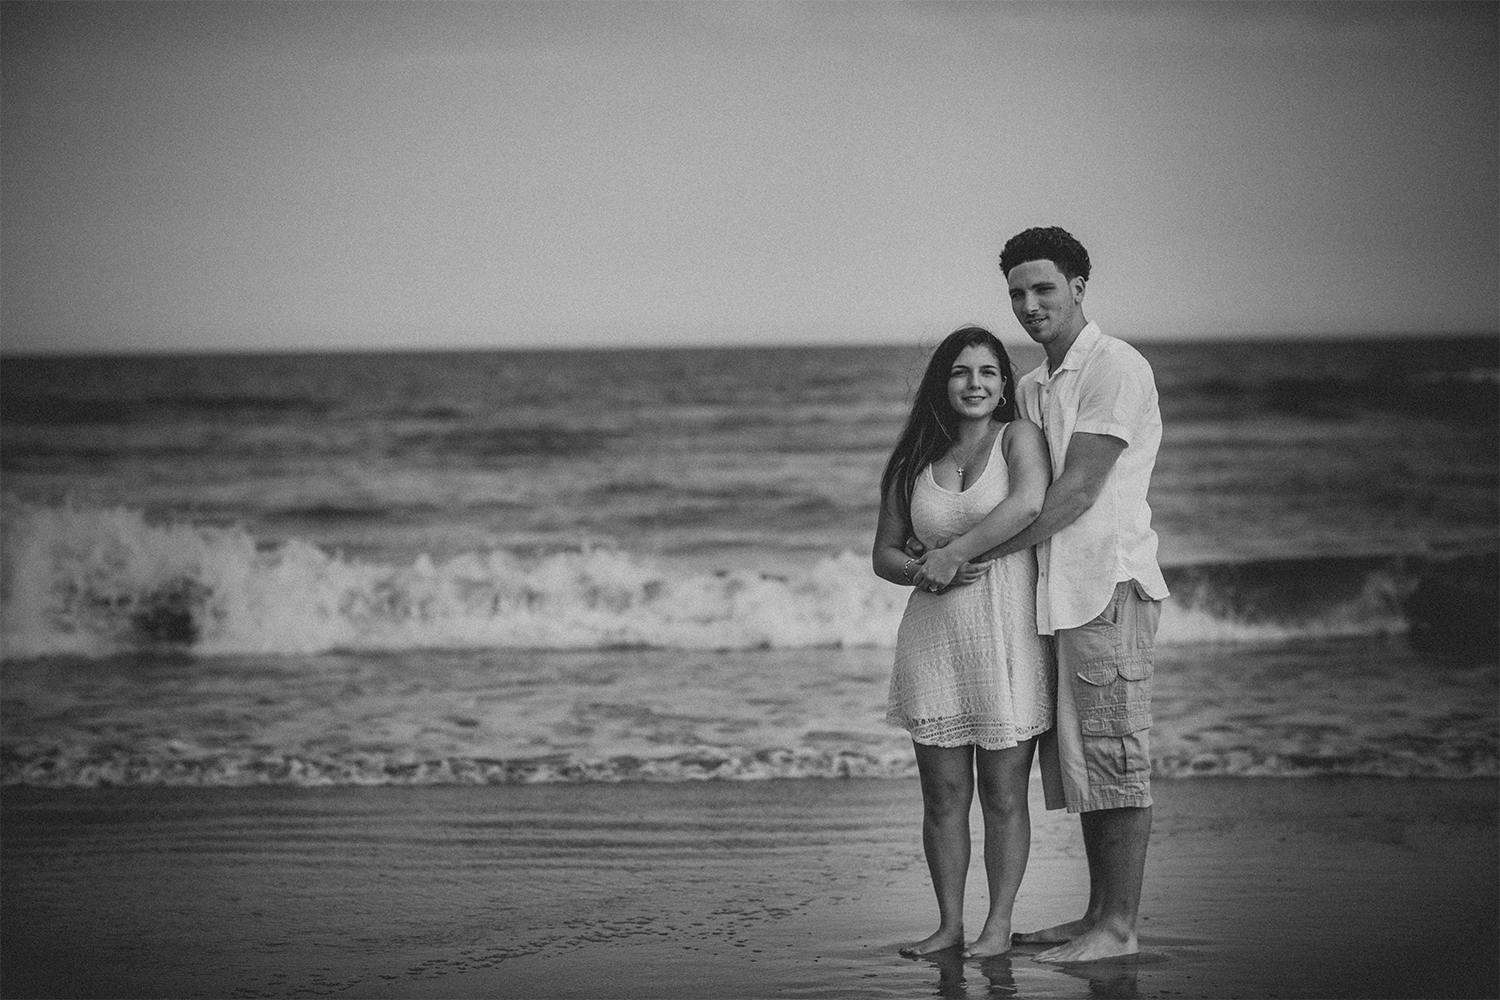 New_Jersey_Wedding_Photography_Engagement_Session_Beach_Session_Couple_018.jpg